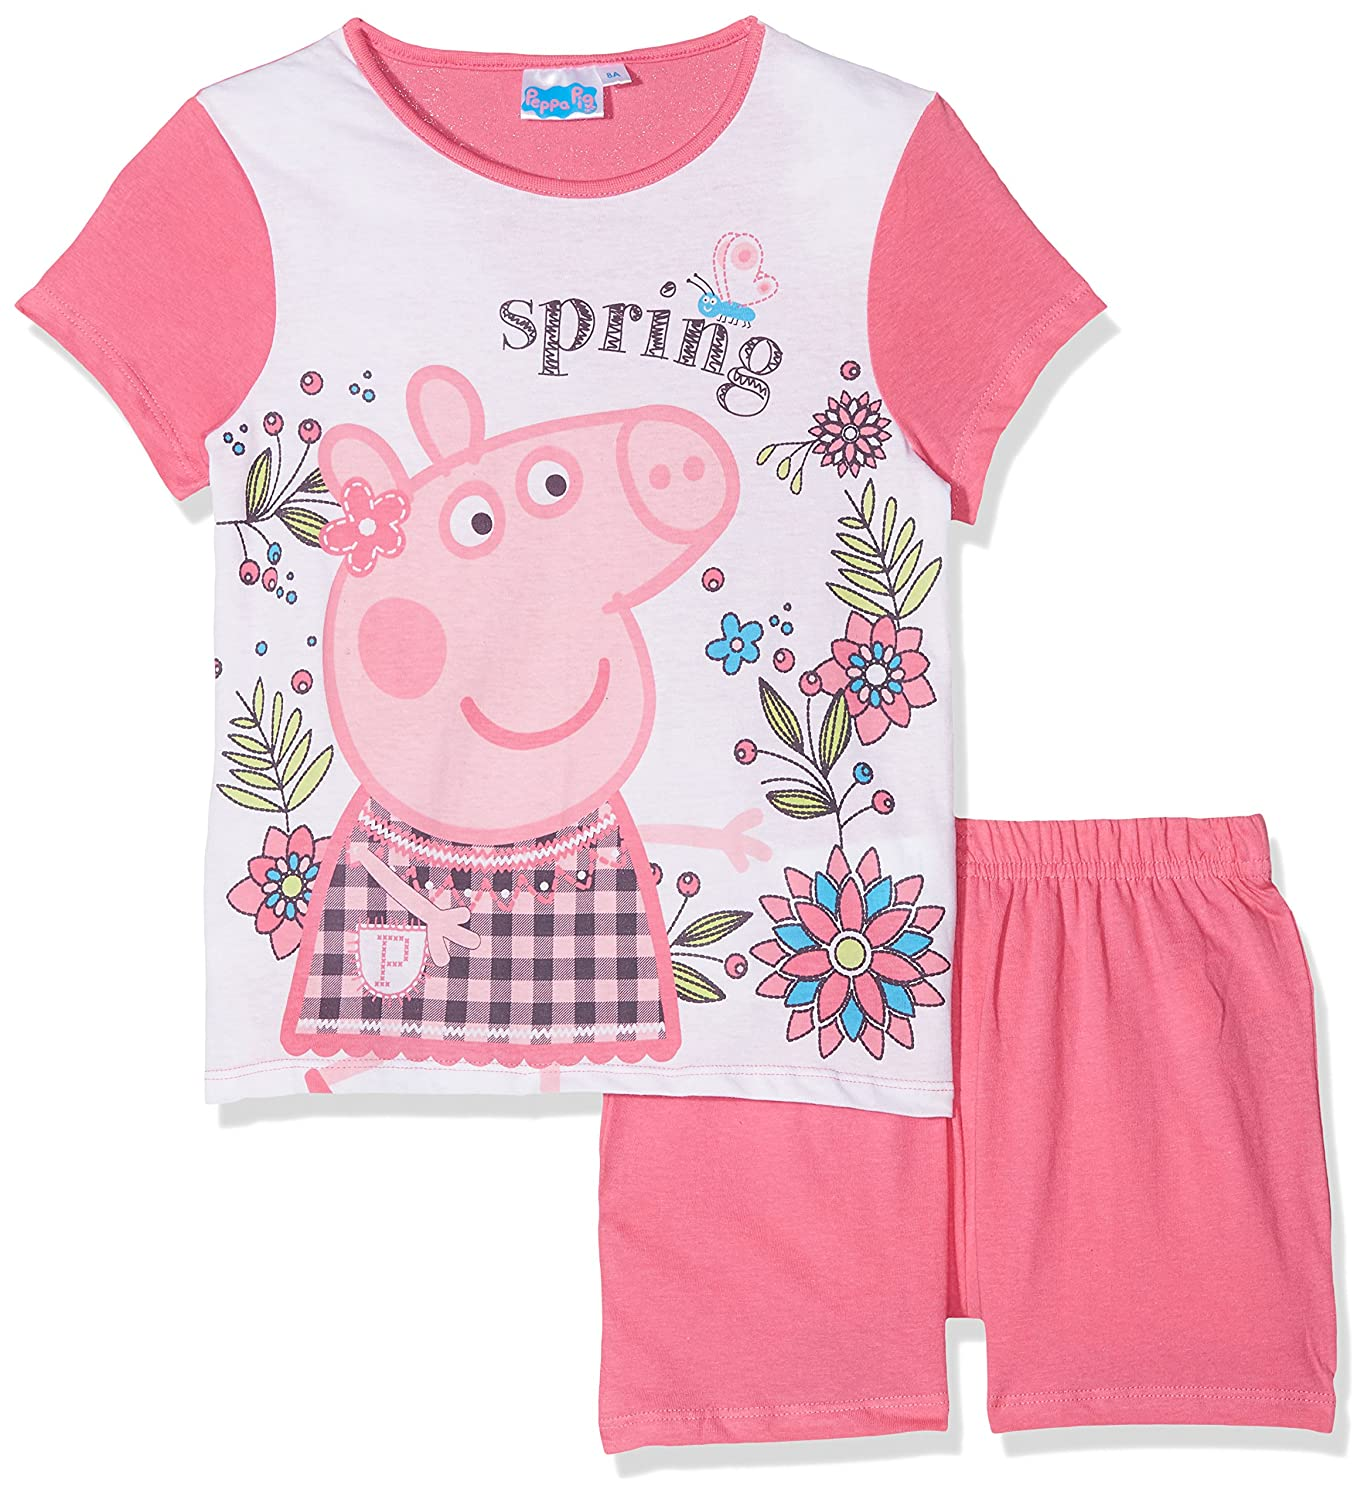 Peppa Pig Girl's Pyjama Sets